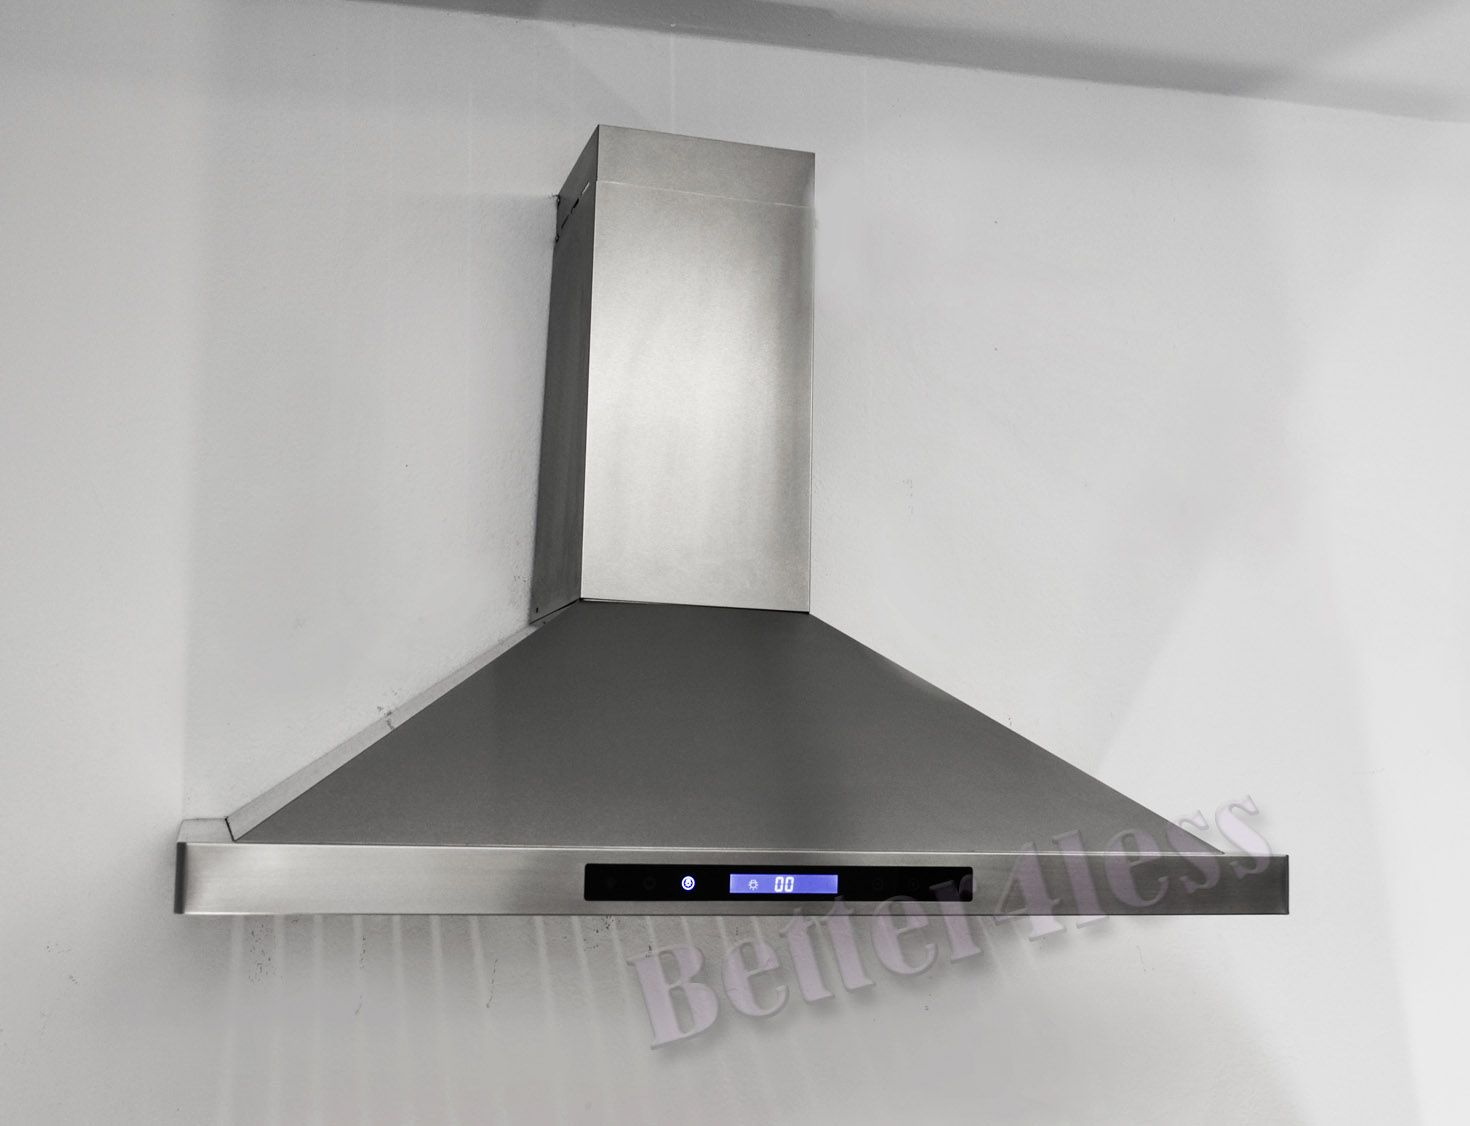 Exhaust Fans For Kitchens Menards Kitchen Sink 36 Quot Wall Mount Stainless Steel Range Hood Vent Fan